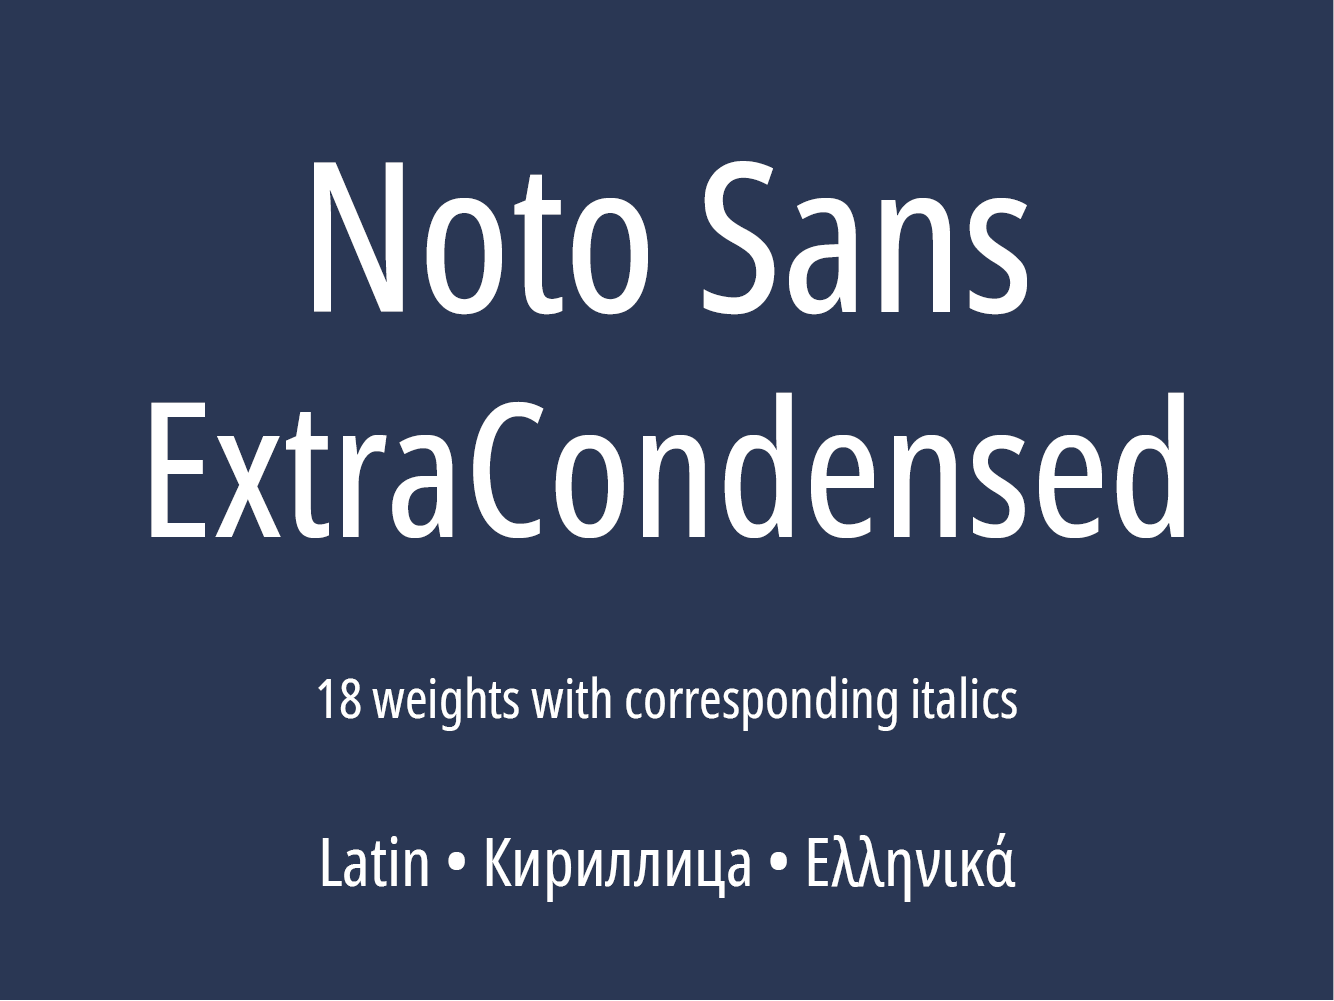 Noto Sans ExtraCondensed